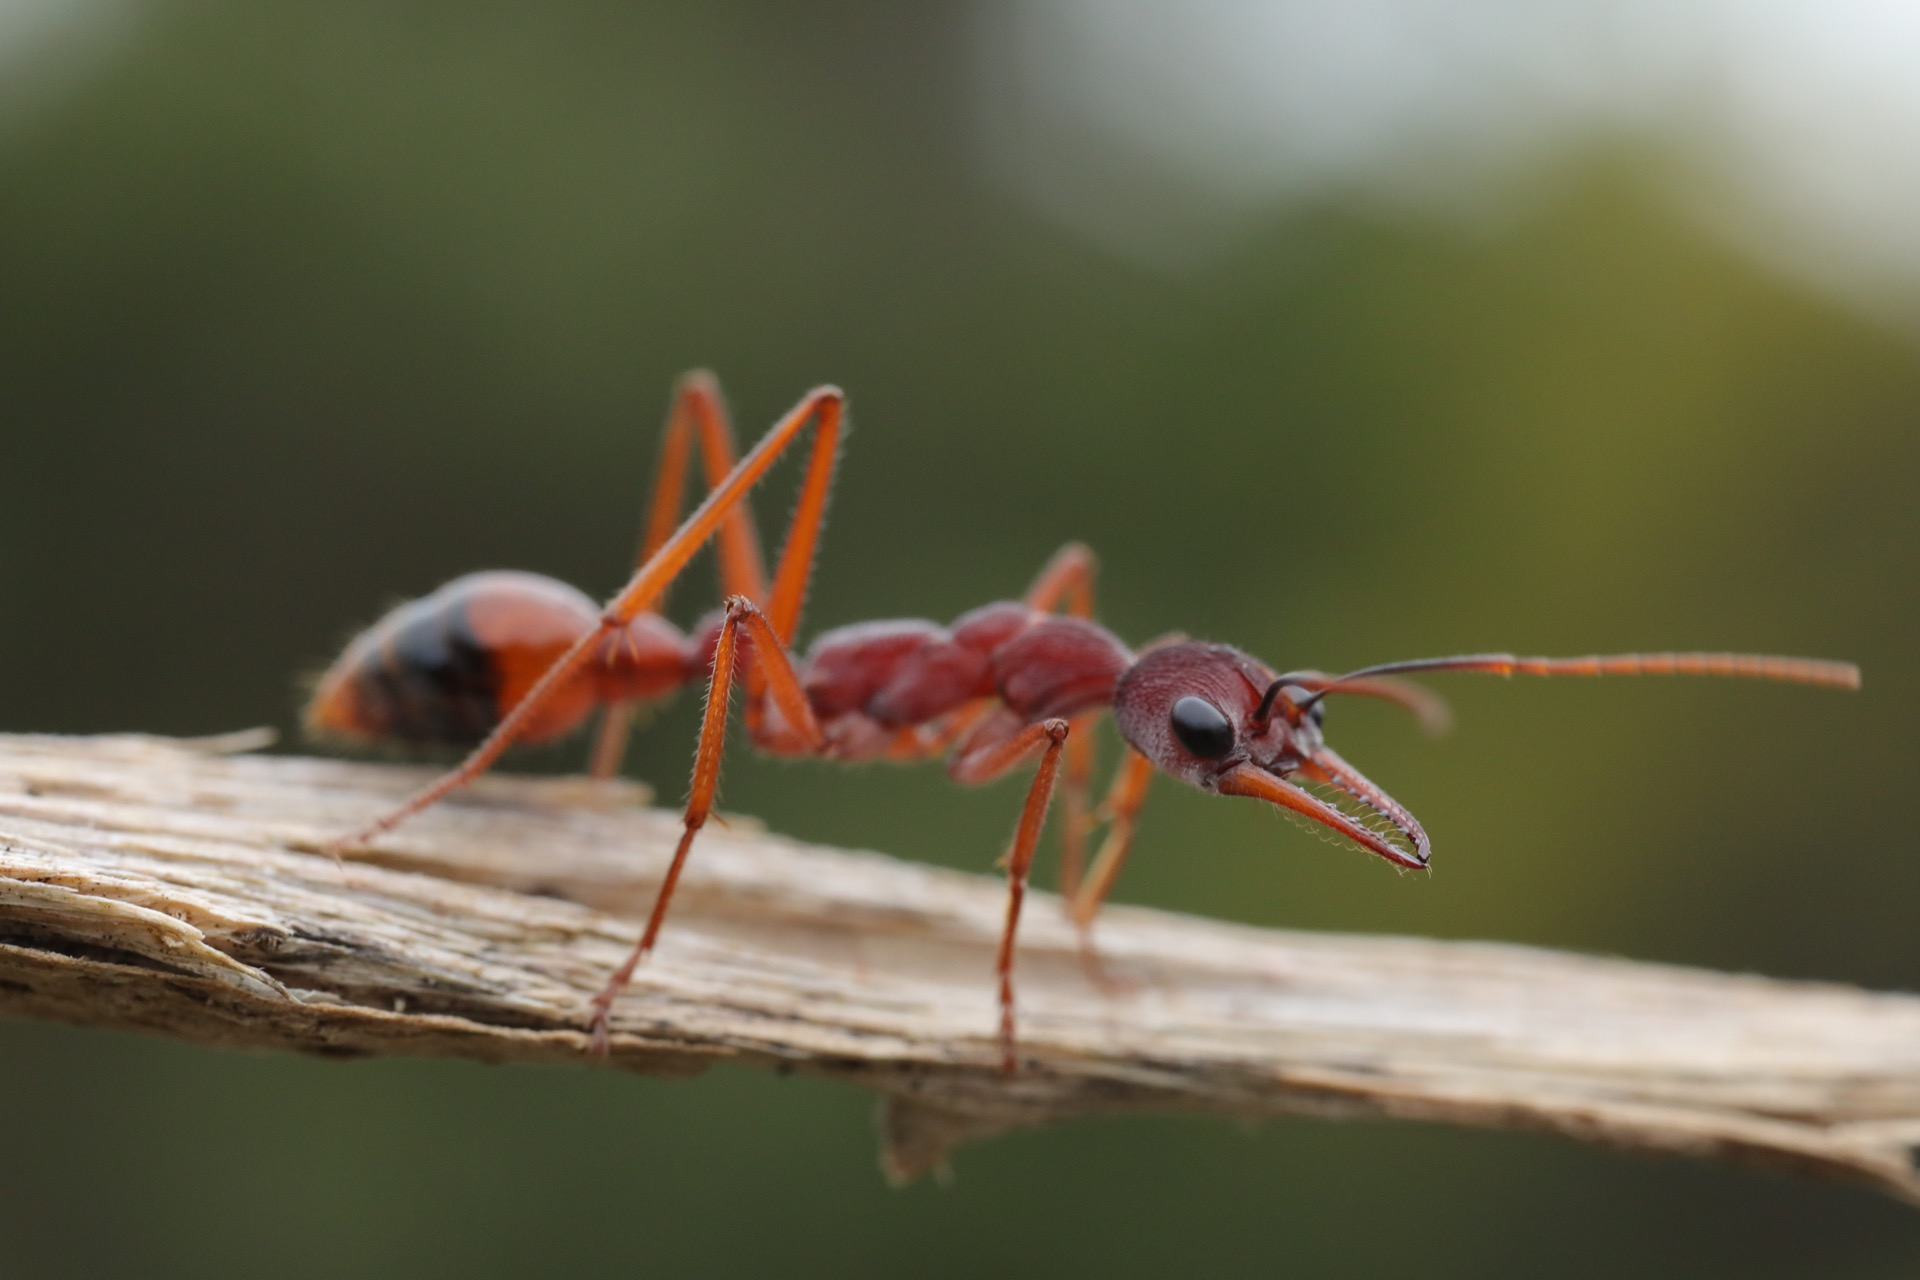 Finding an 'inch' ant!